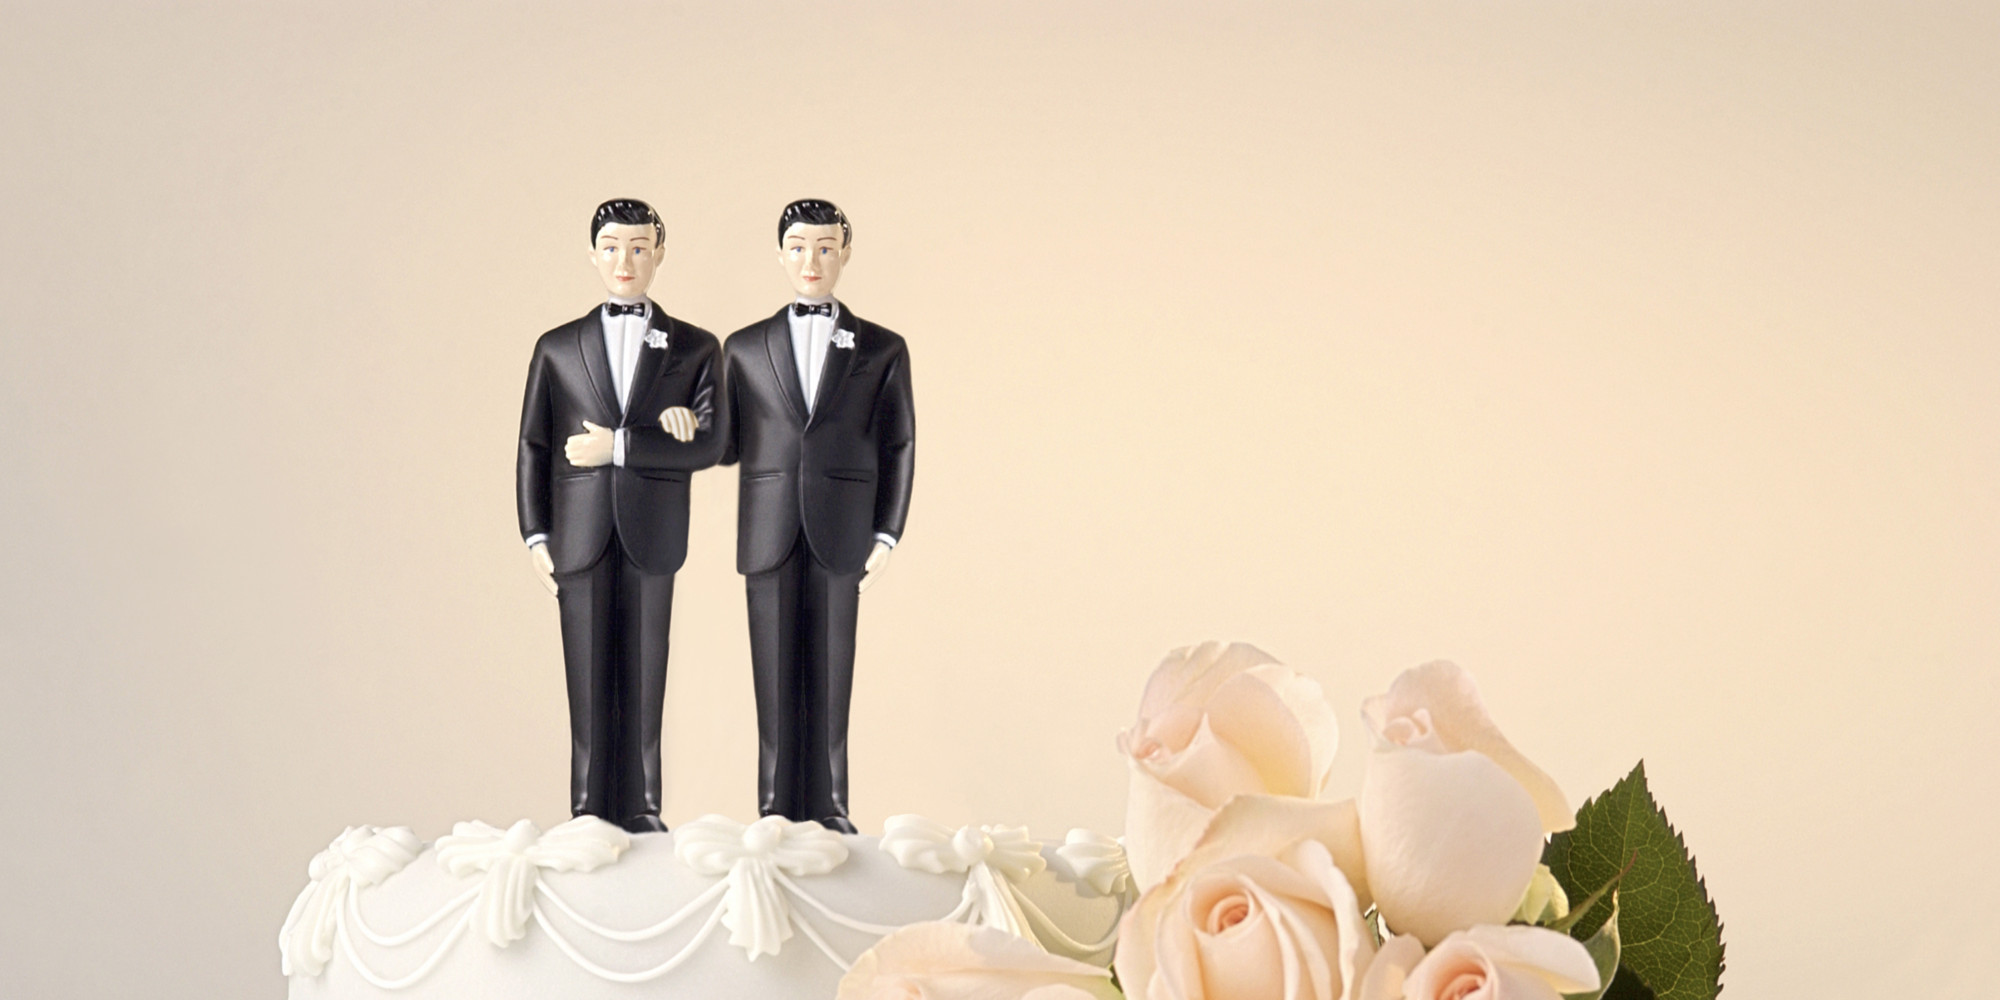 Wedding Cake Ideas For Gay Wedding : Rush Limbaugh, Dearborn and the Muslim Baker Bigotry Myth ...